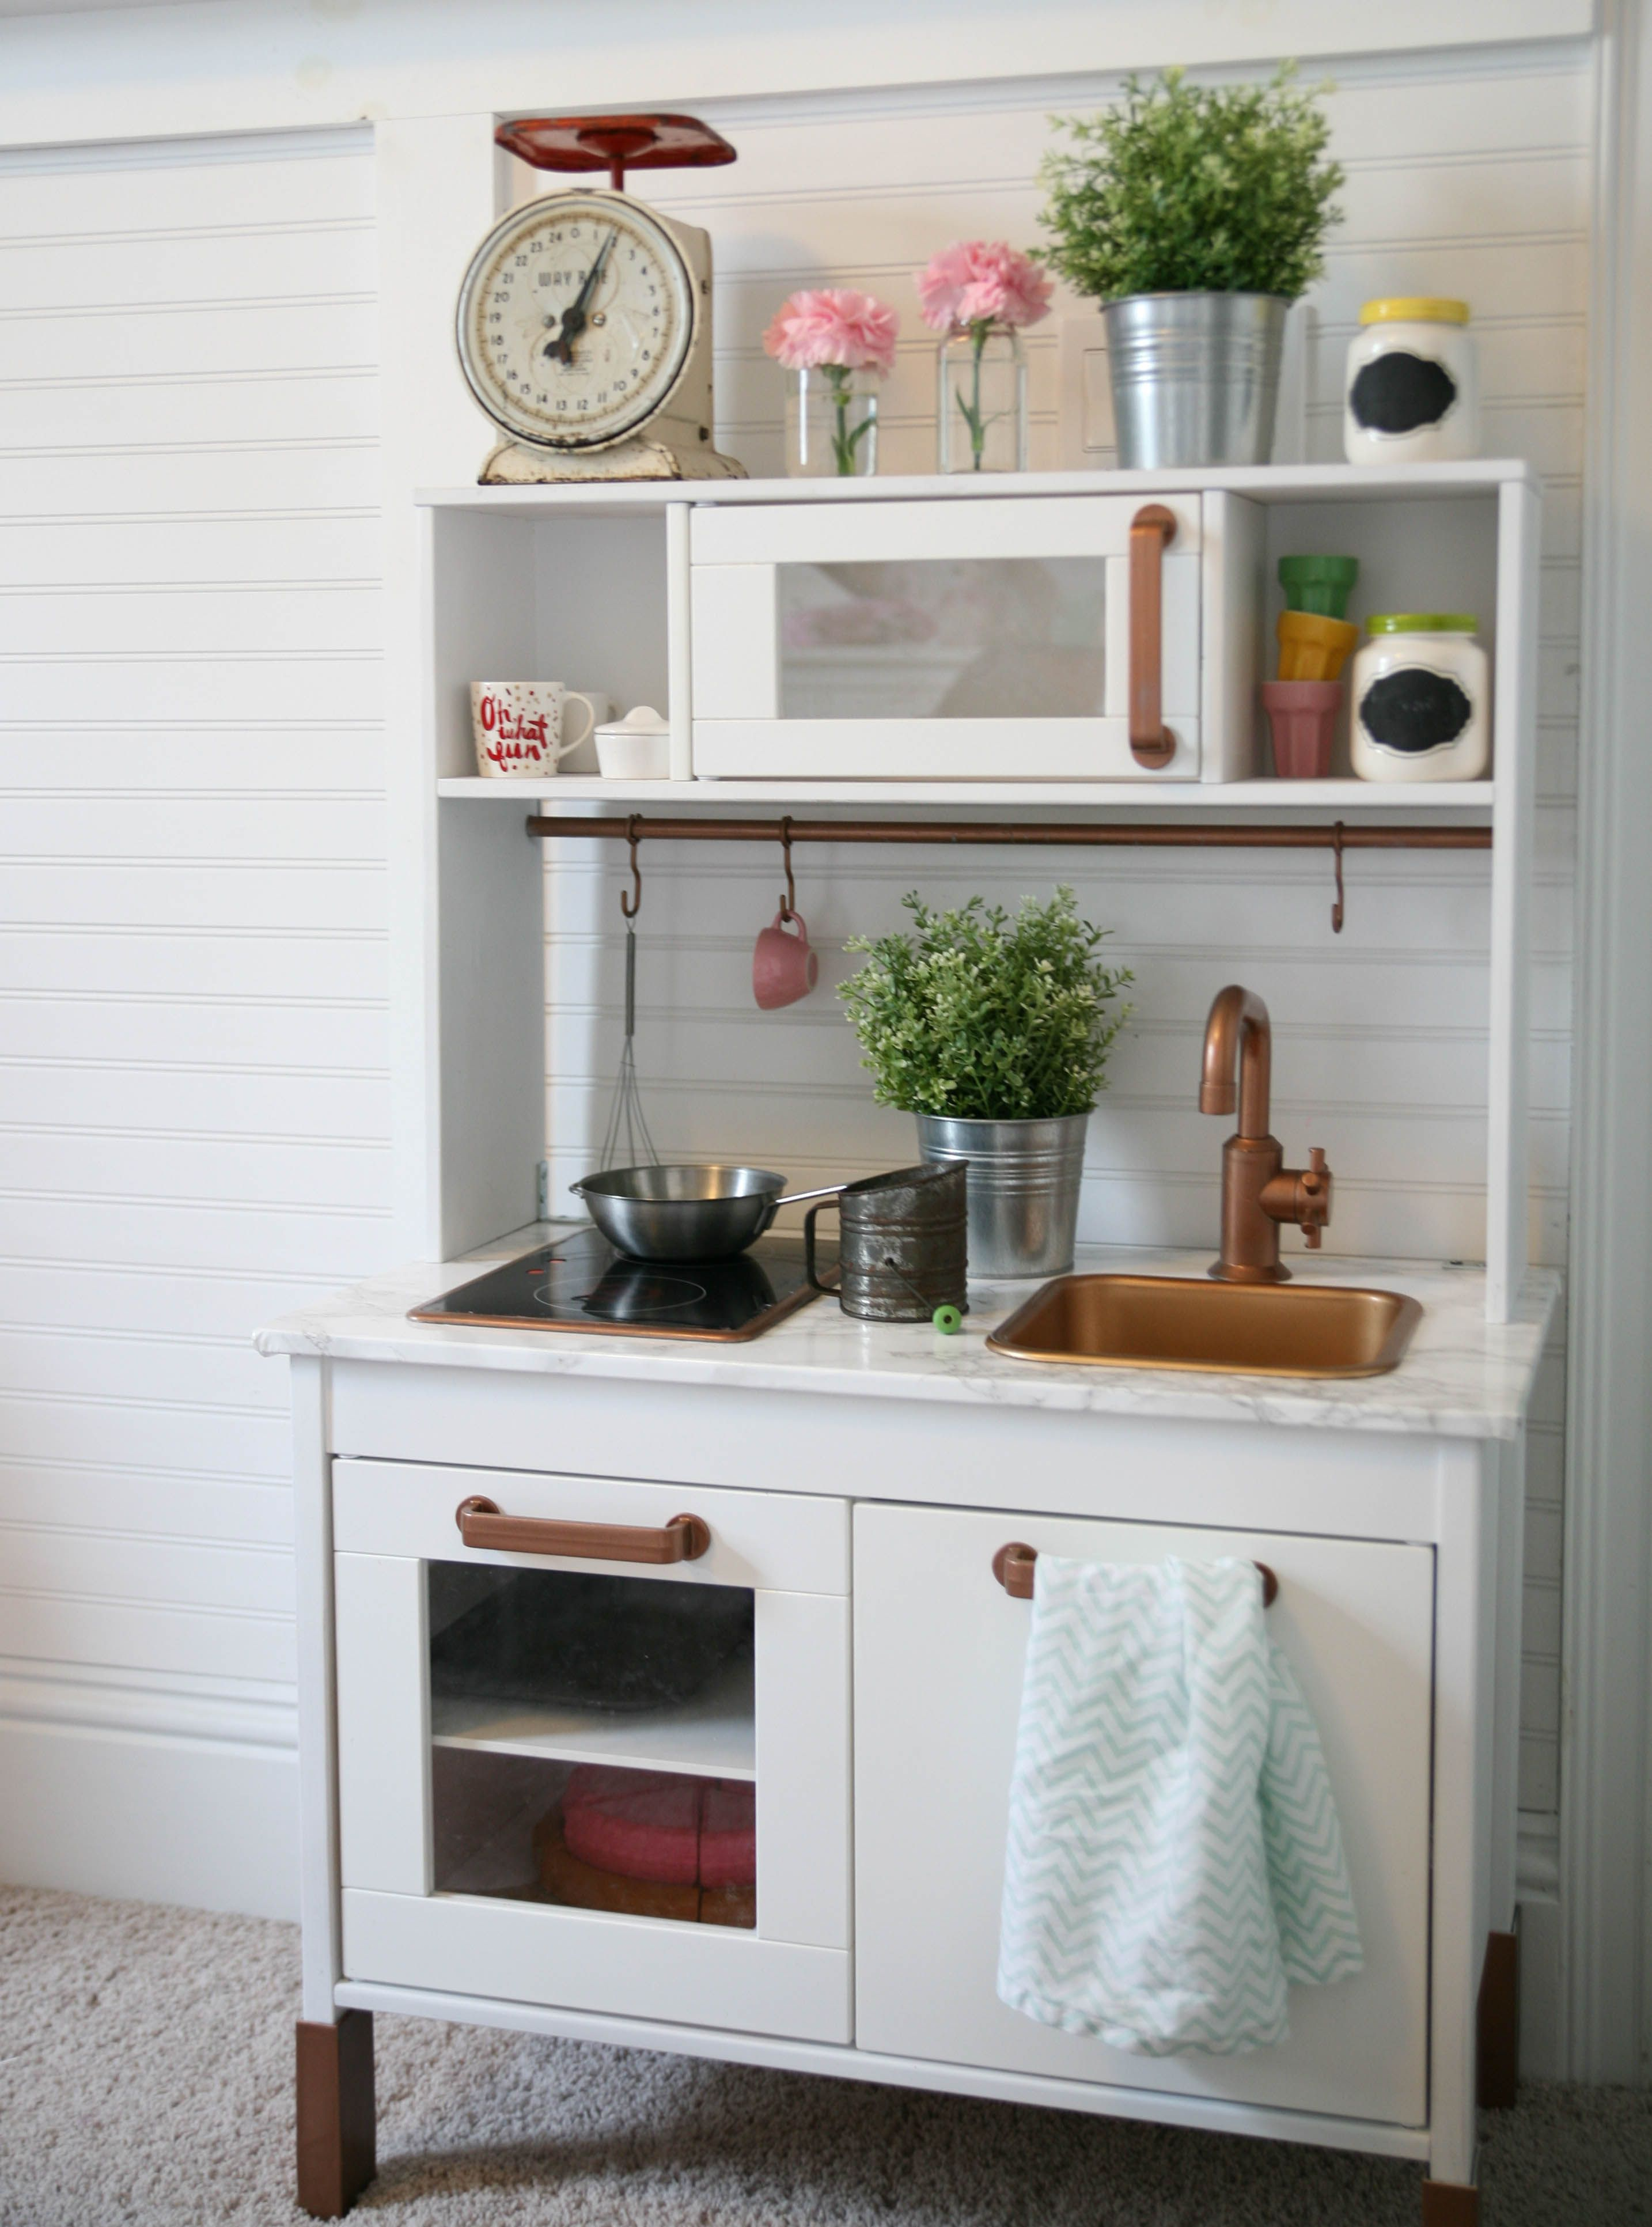 ikea duktig play kitchen hack i spray painted the kitchen white the fixture sink hardware. Black Bedroom Furniture Sets. Home Design Ideas